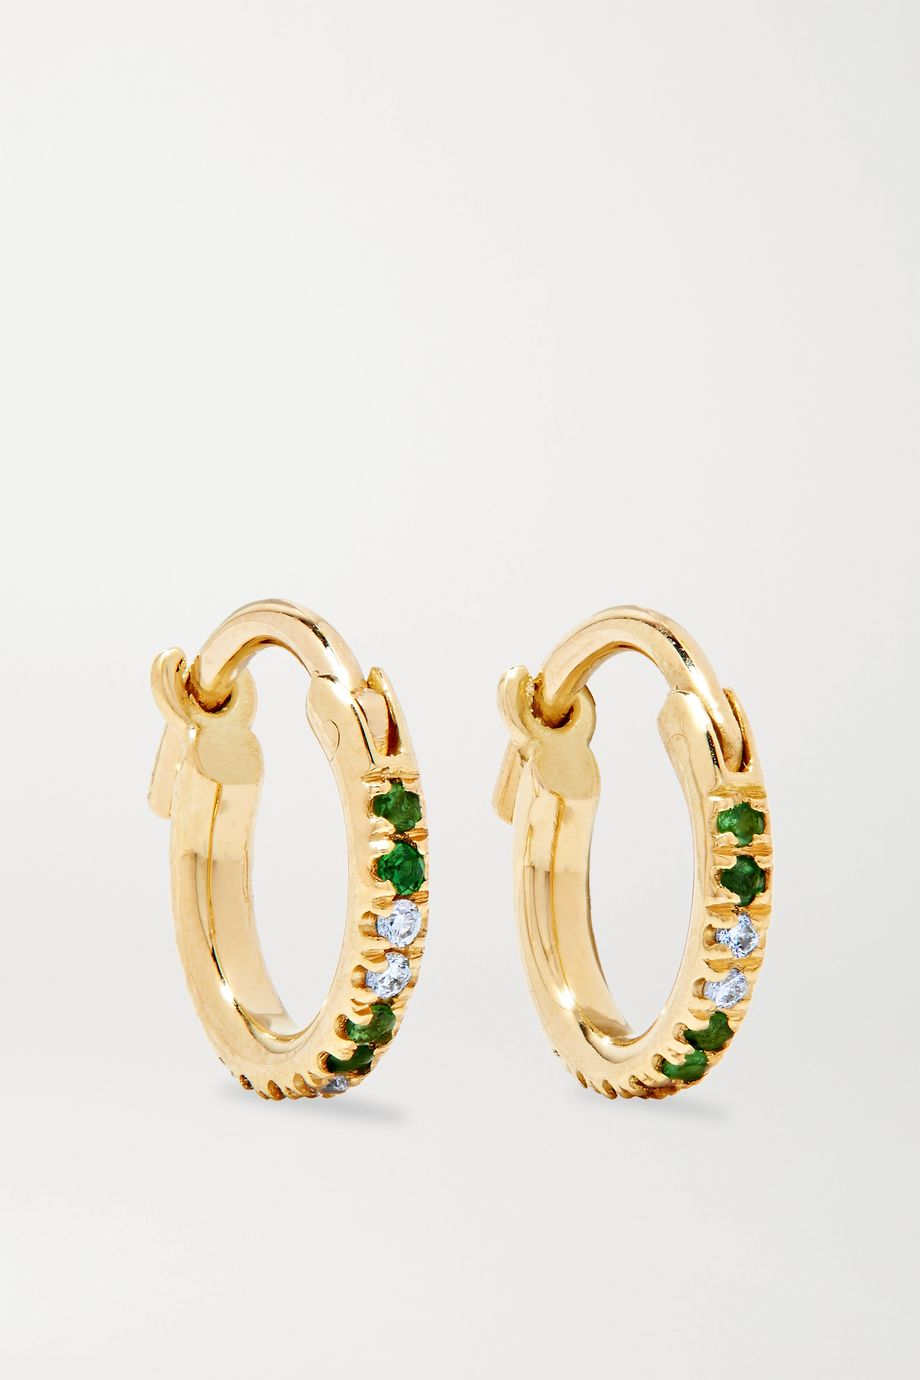 Ileana Makri 18-karat gold, tsavorite and diamond hoop earrings